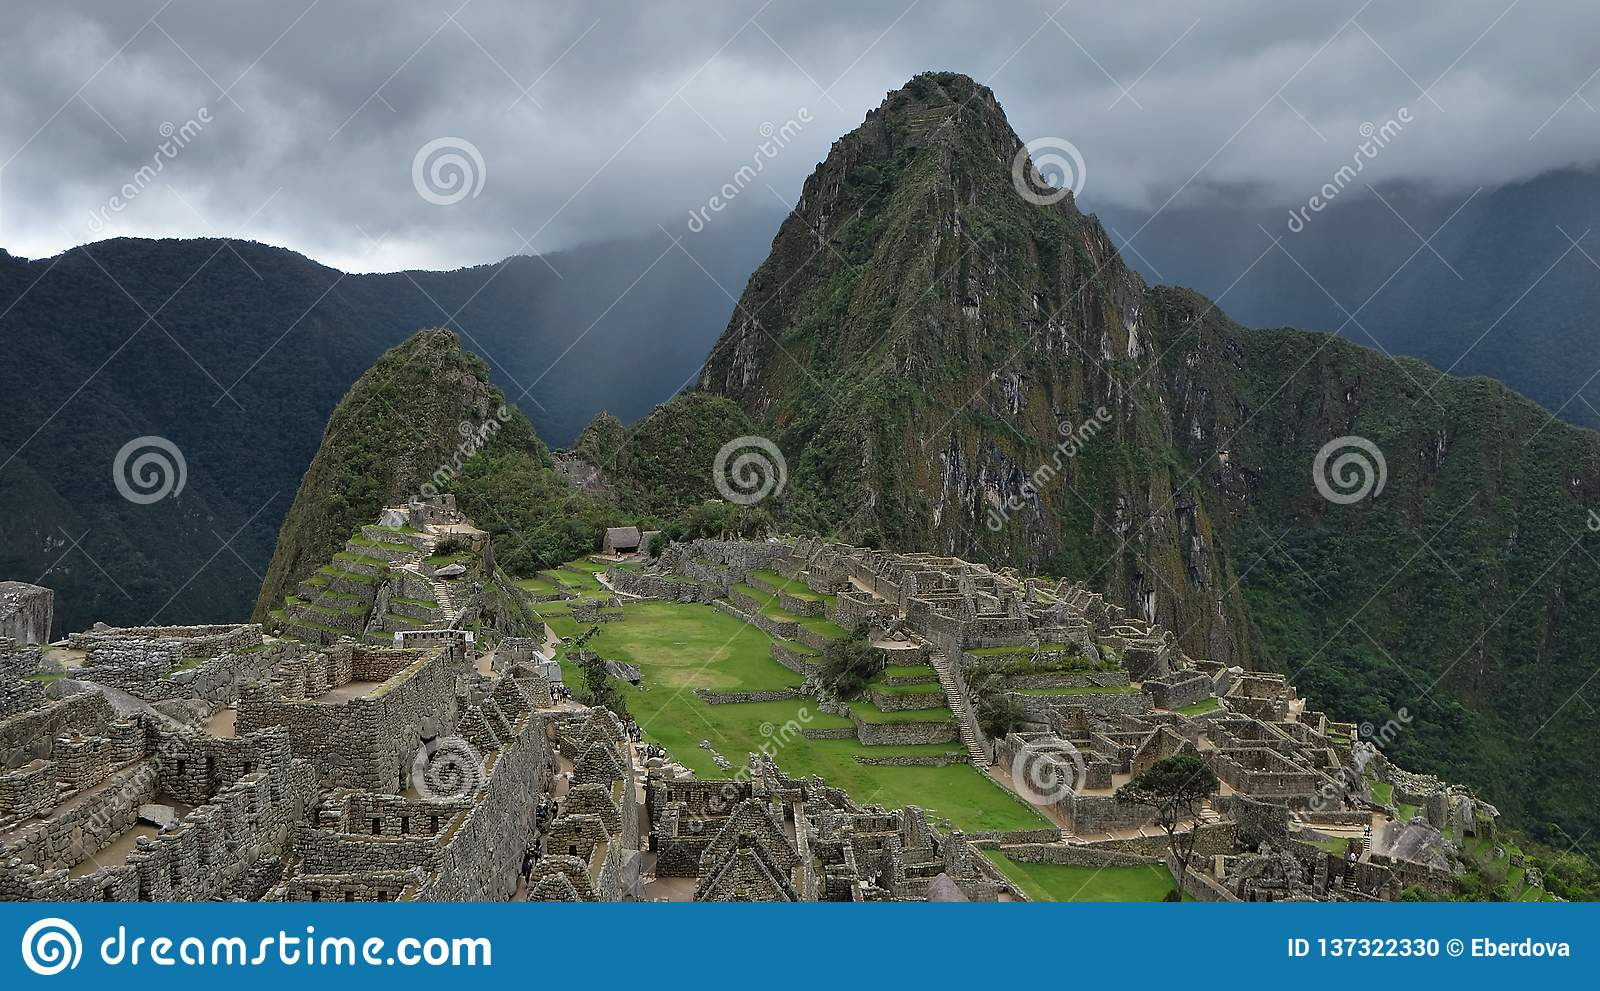 Full view of Machu Picchu archaeological site.